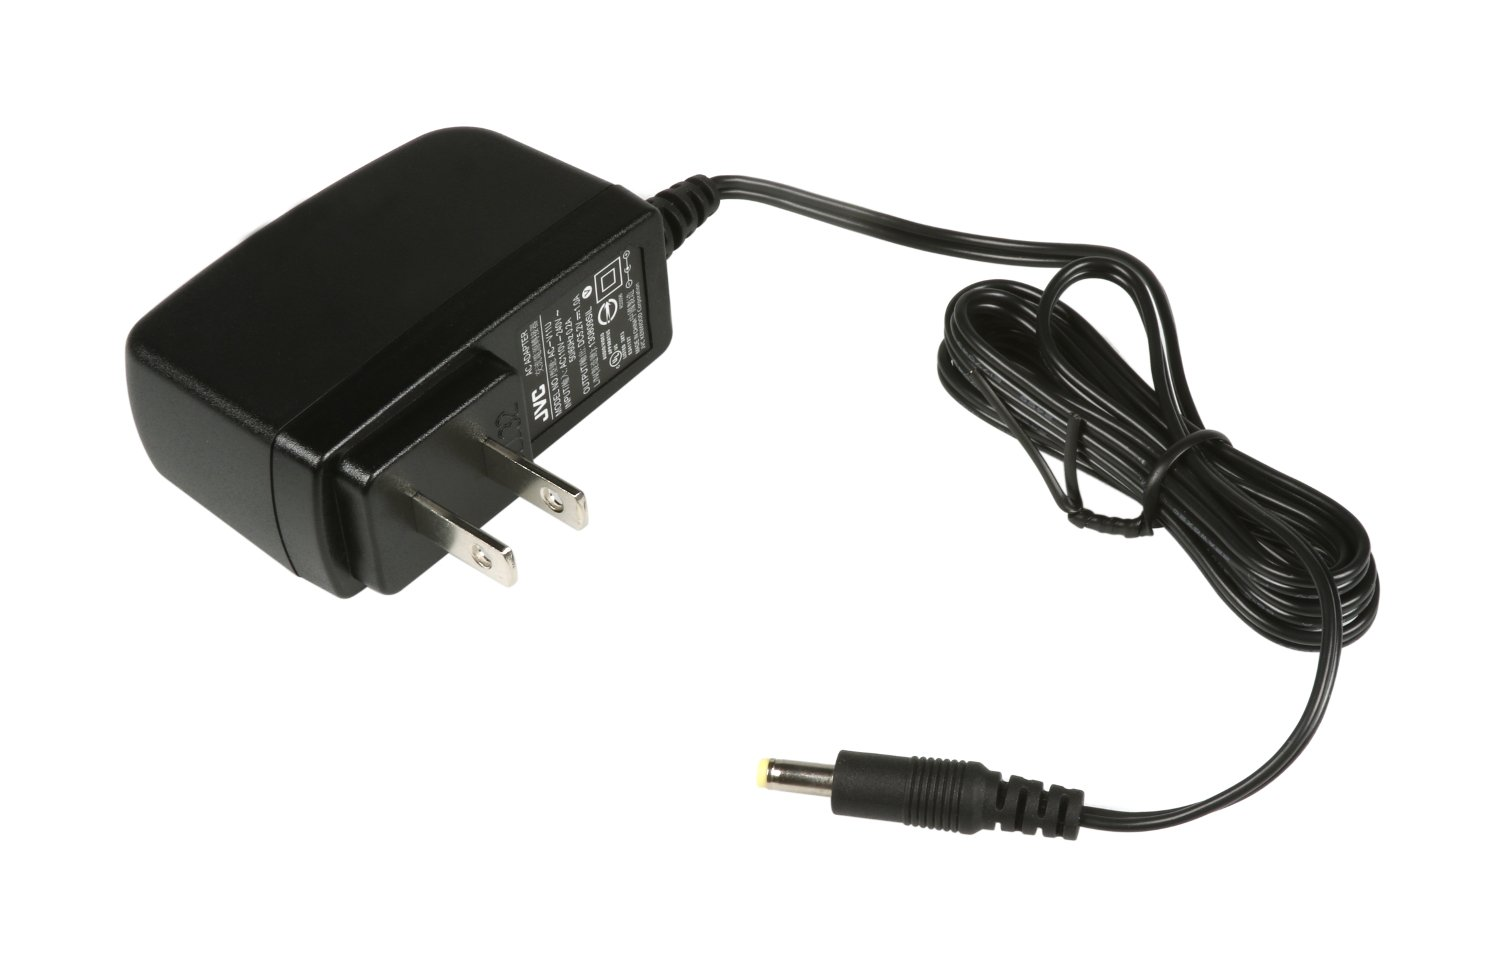 JVC QAL1323-003 Power Adapter for GZ-HM65 and GZ-E100 QAL1323-003